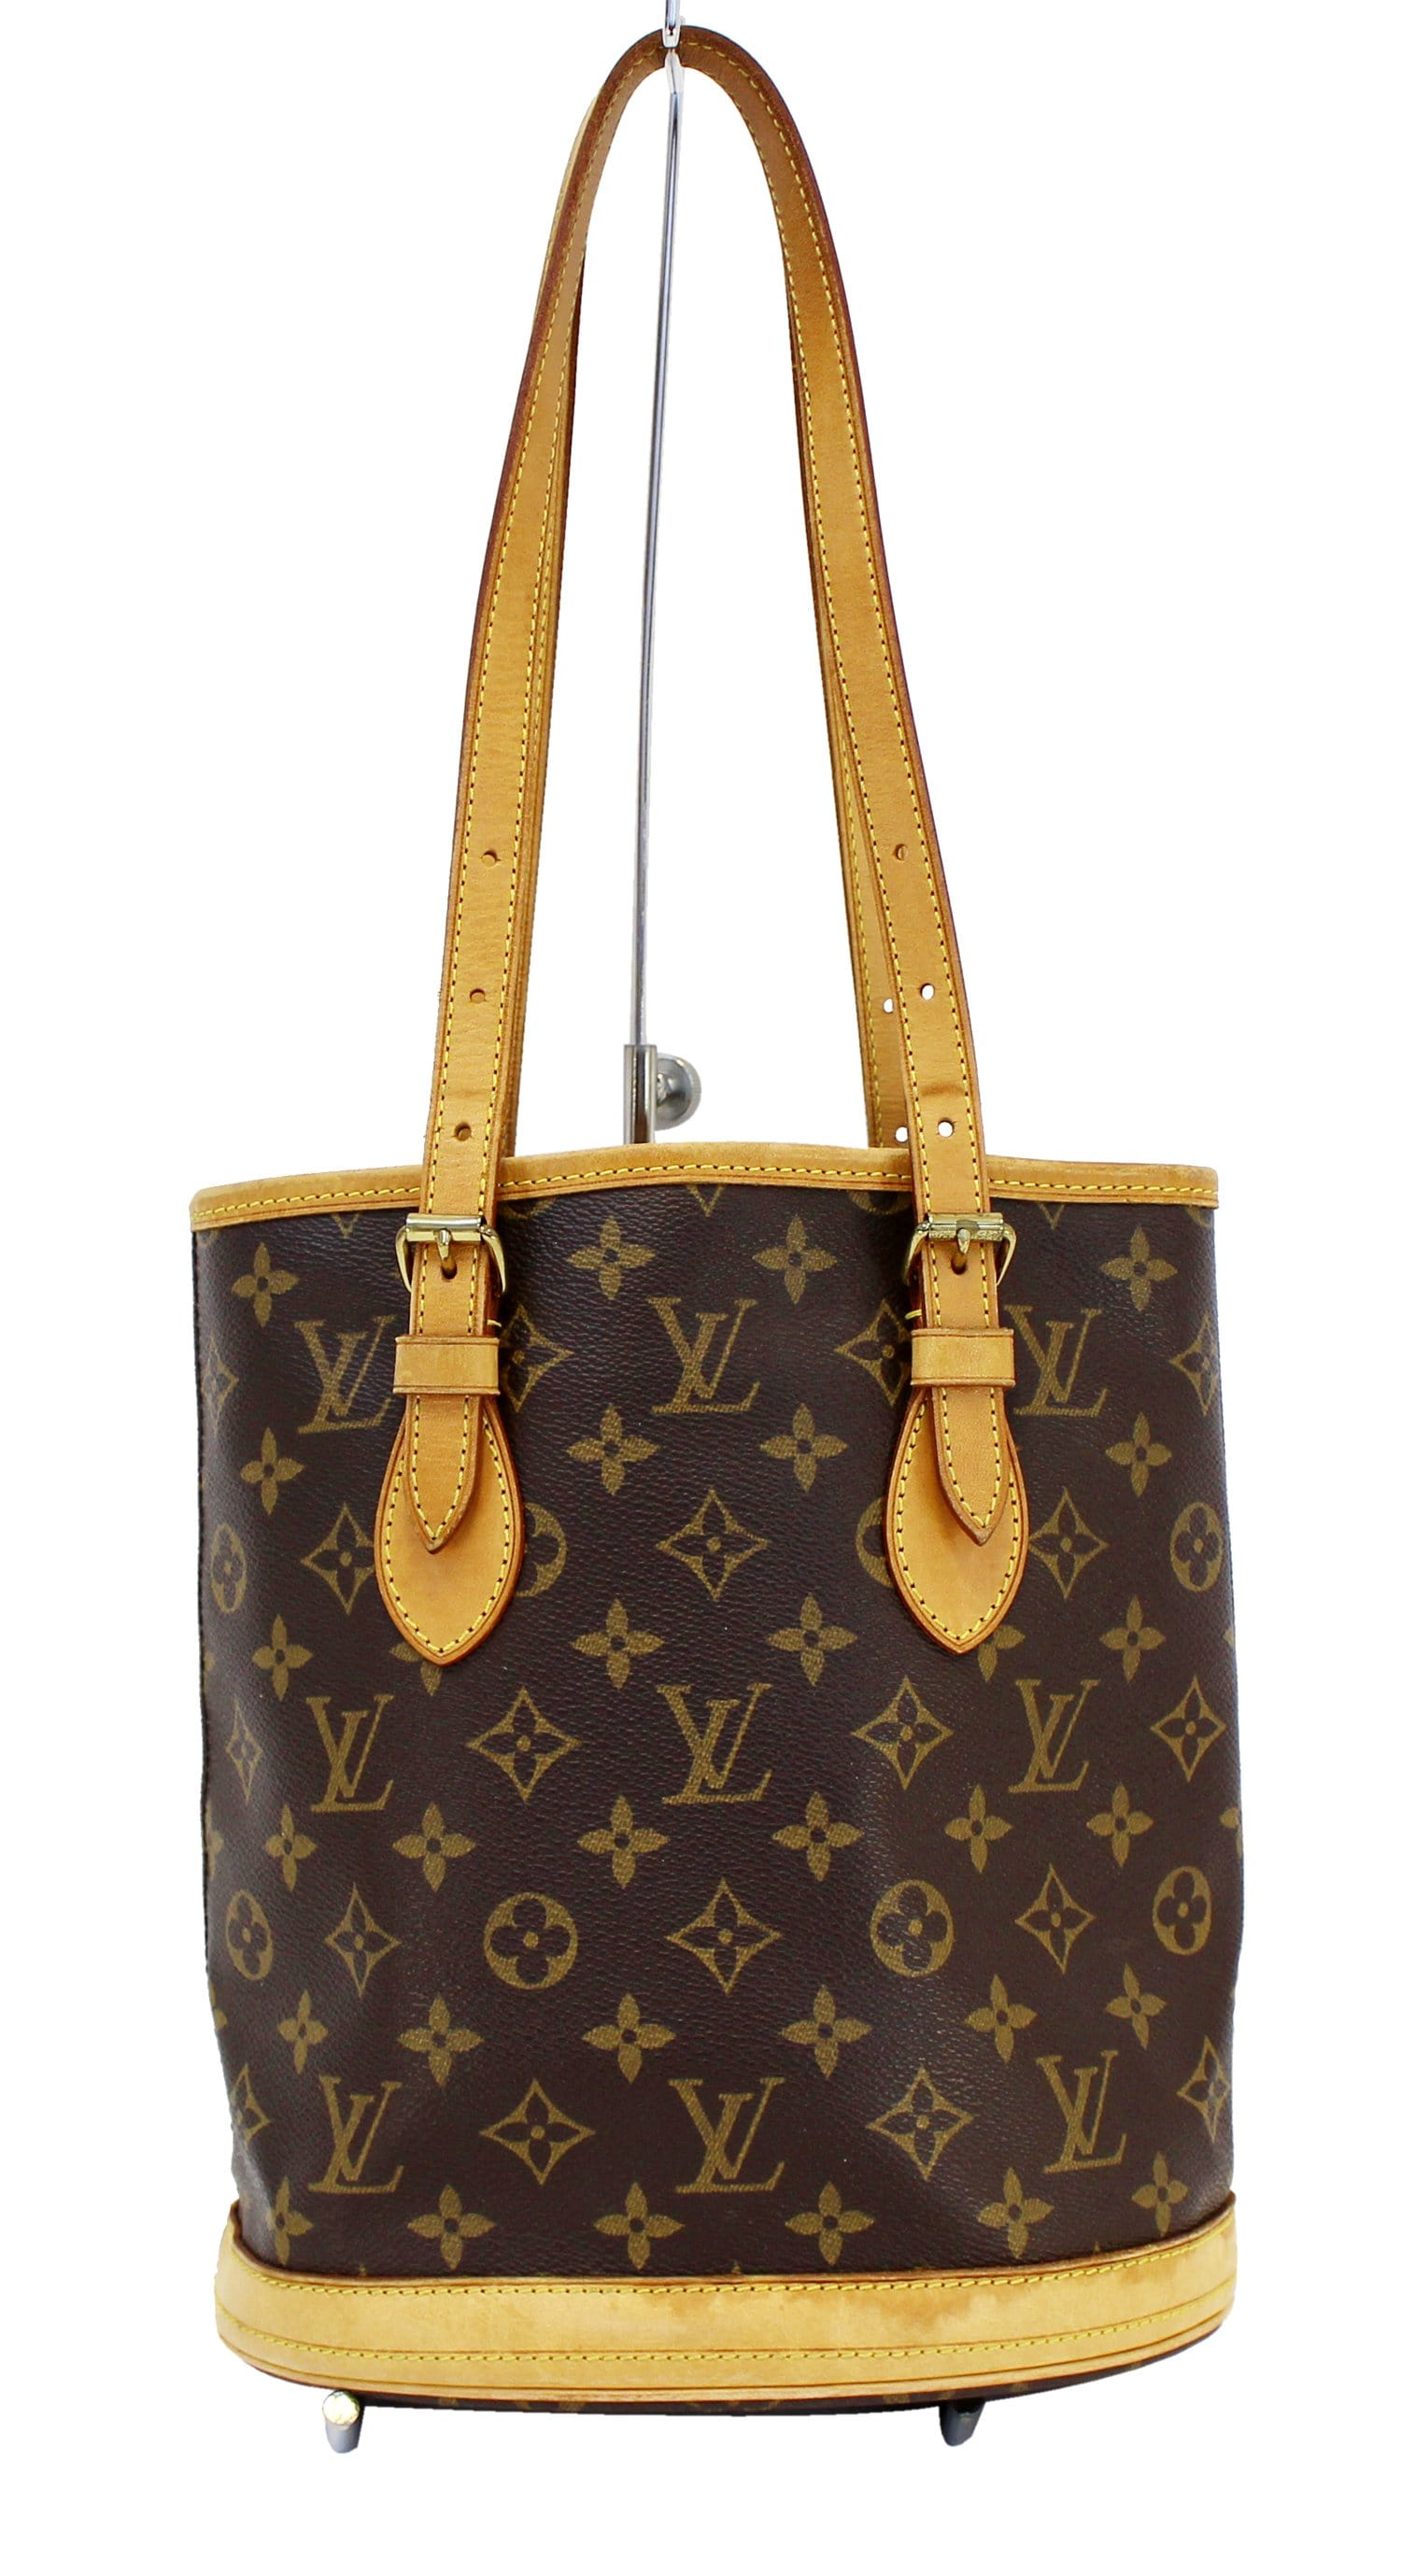 ac688d0974 LOUIS VUITTON Bucket PM Monogram Canvas Shoulder Bag - 30% Off